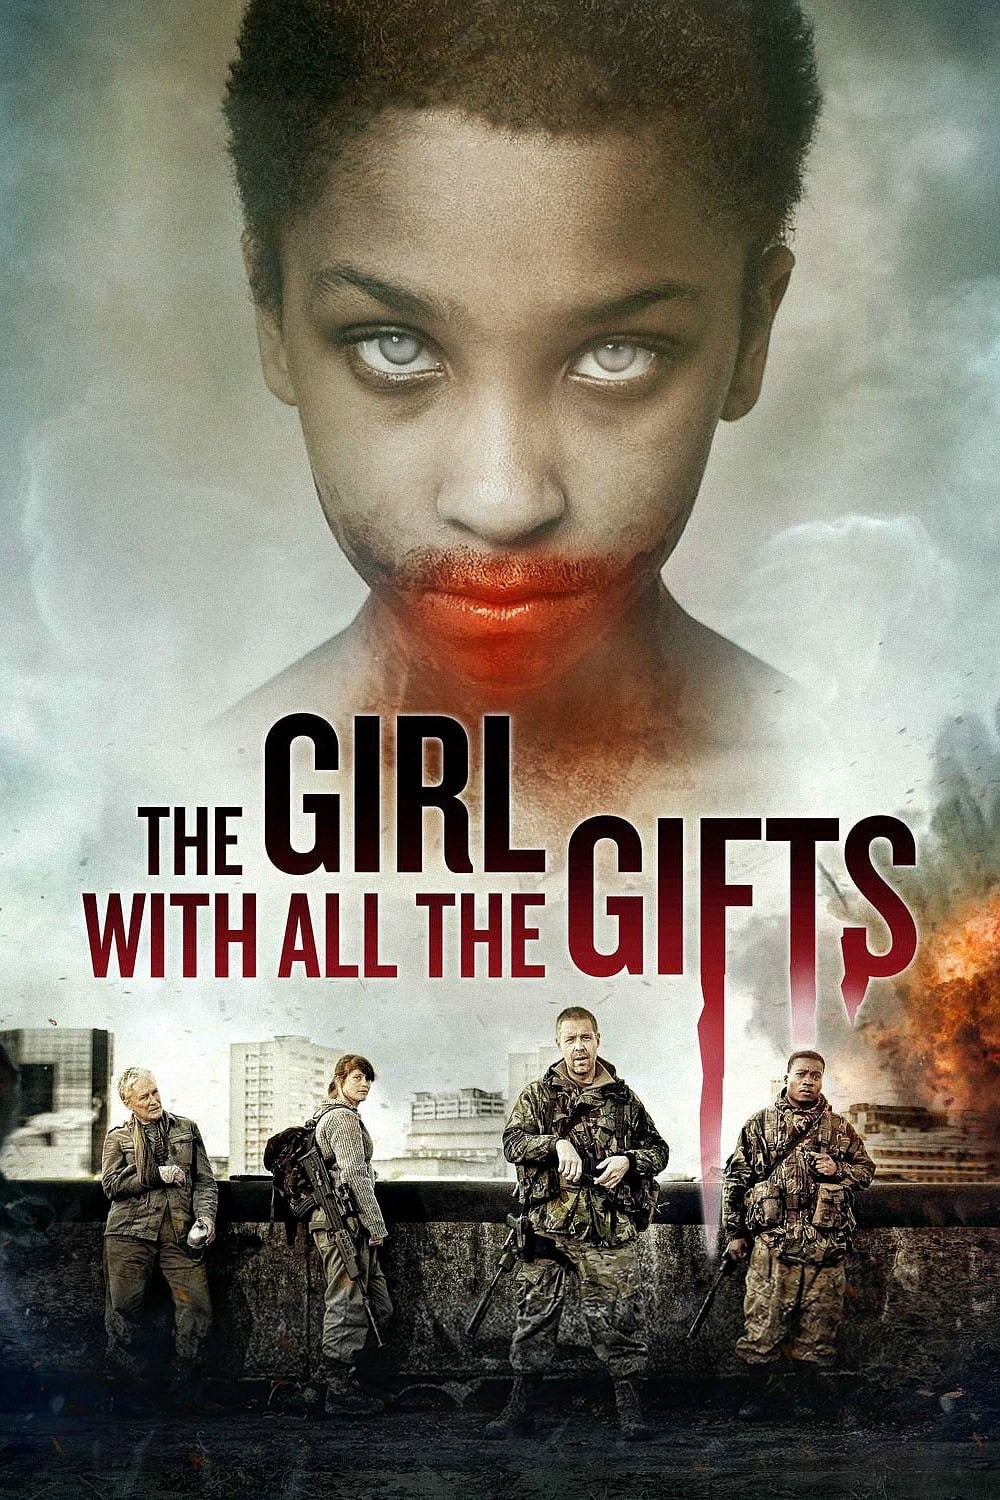 Melanie: The Girl with All the Gifts (Melanie: Apocalipsis zombi)